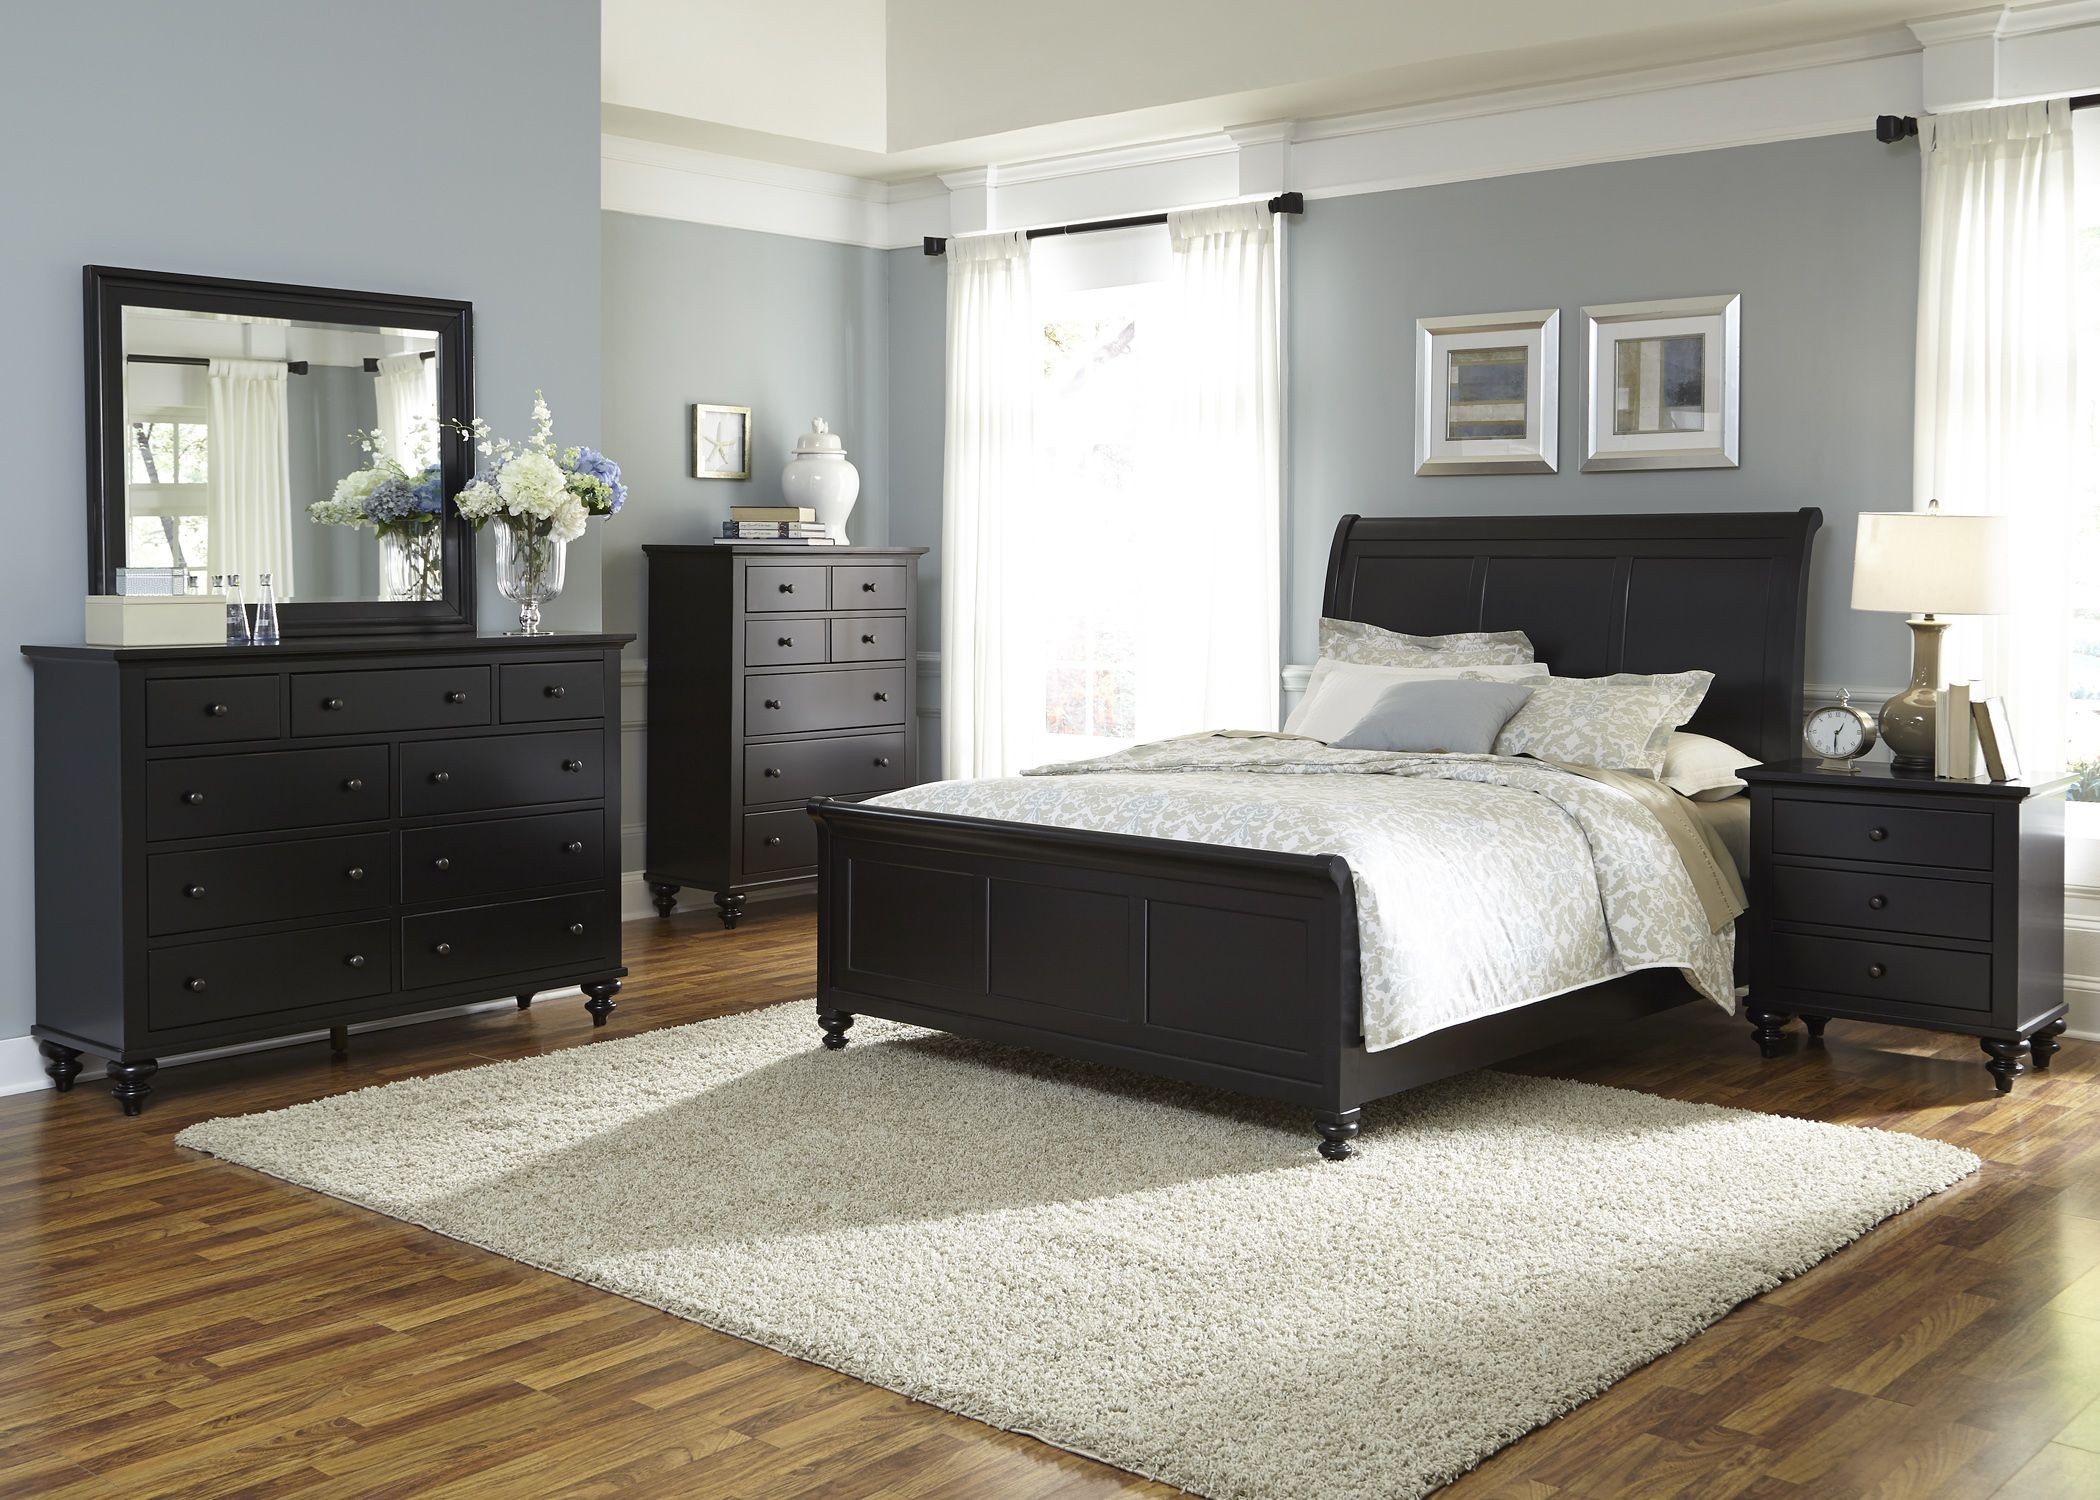 Hamilton III Black 3 Drawer Night Stand from Liberty 441 BR61